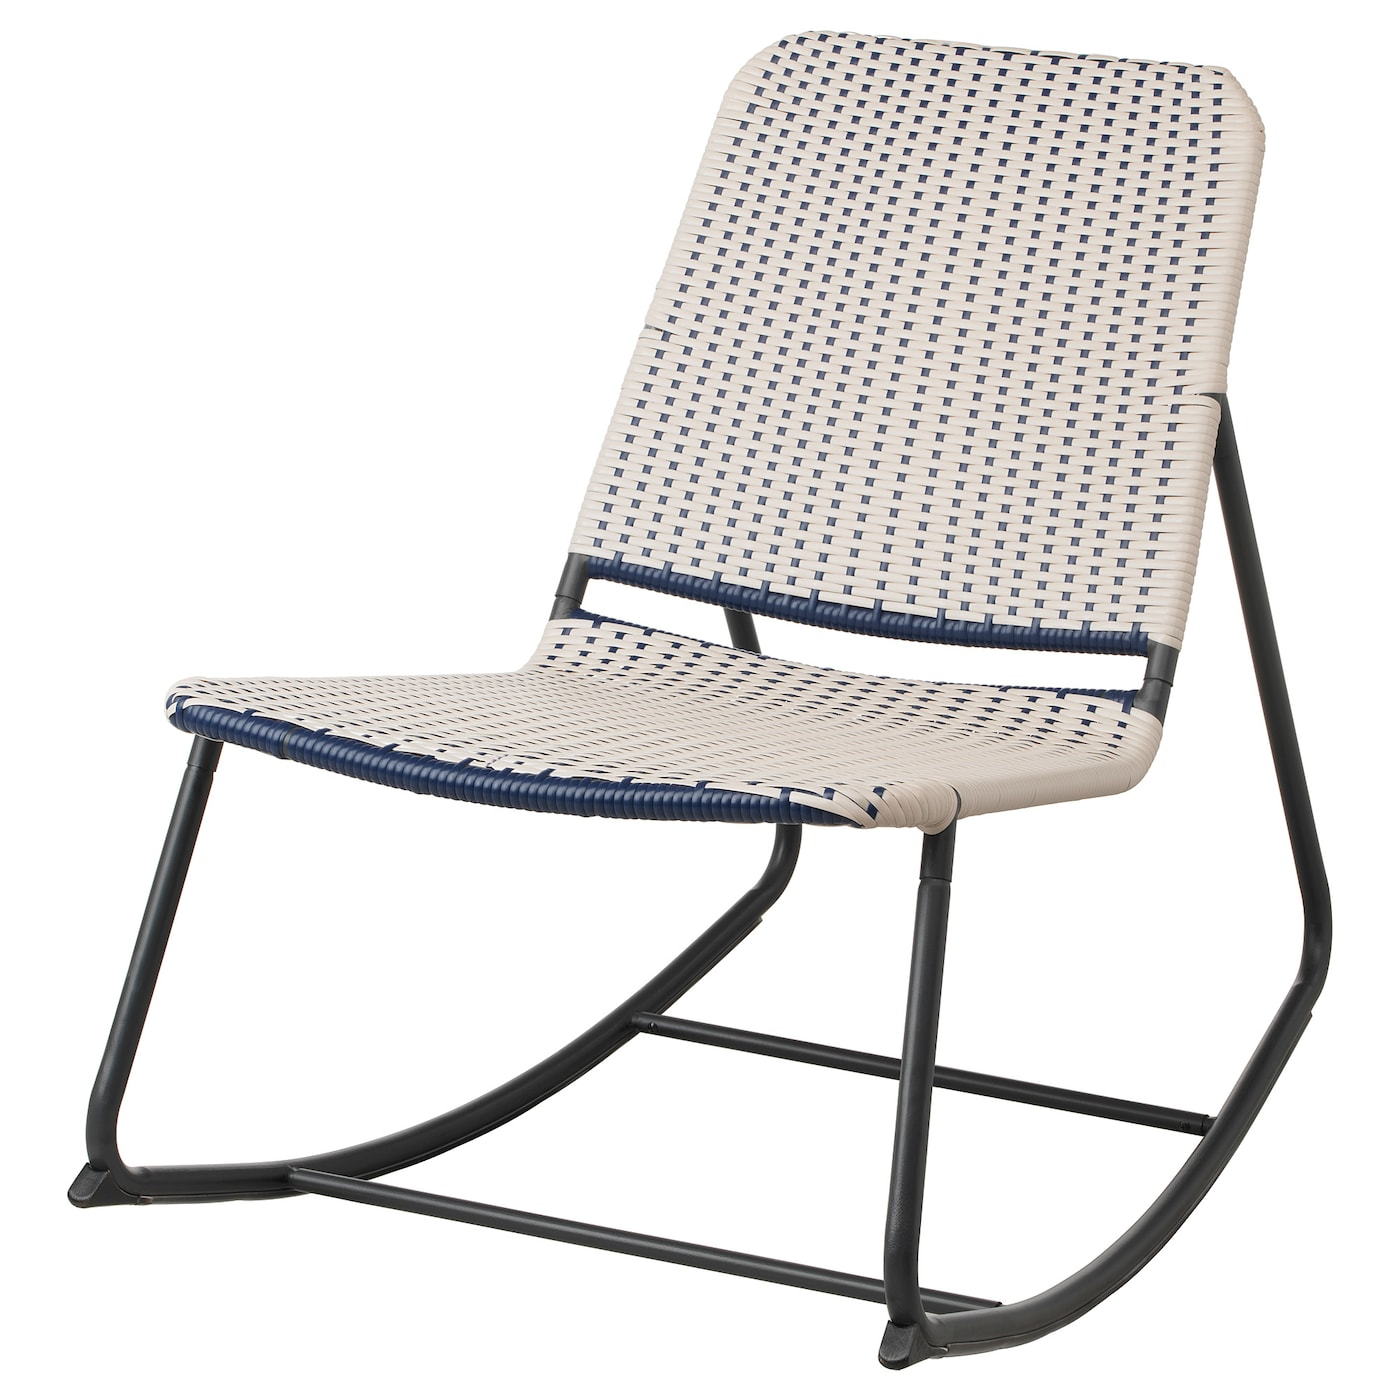 IKEA ÖVERALLT rocking-chair The gentle rocking helps your body and mind to relax.